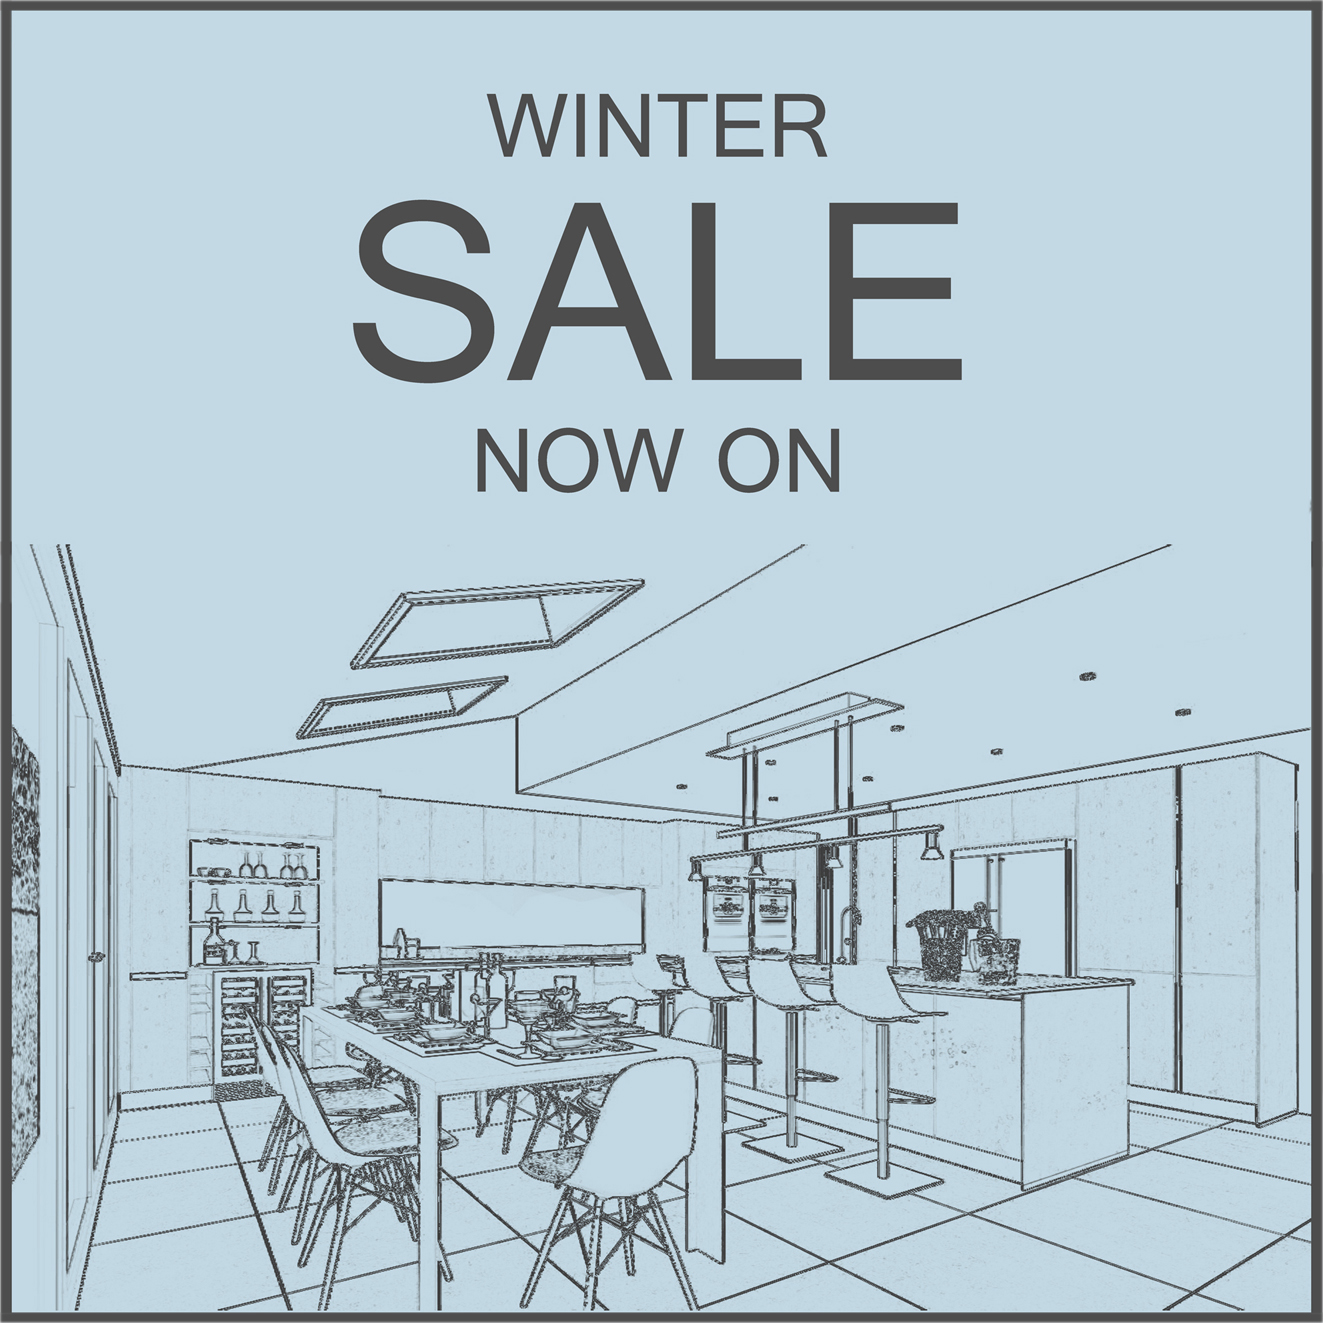 Winter Sale Now On! Image